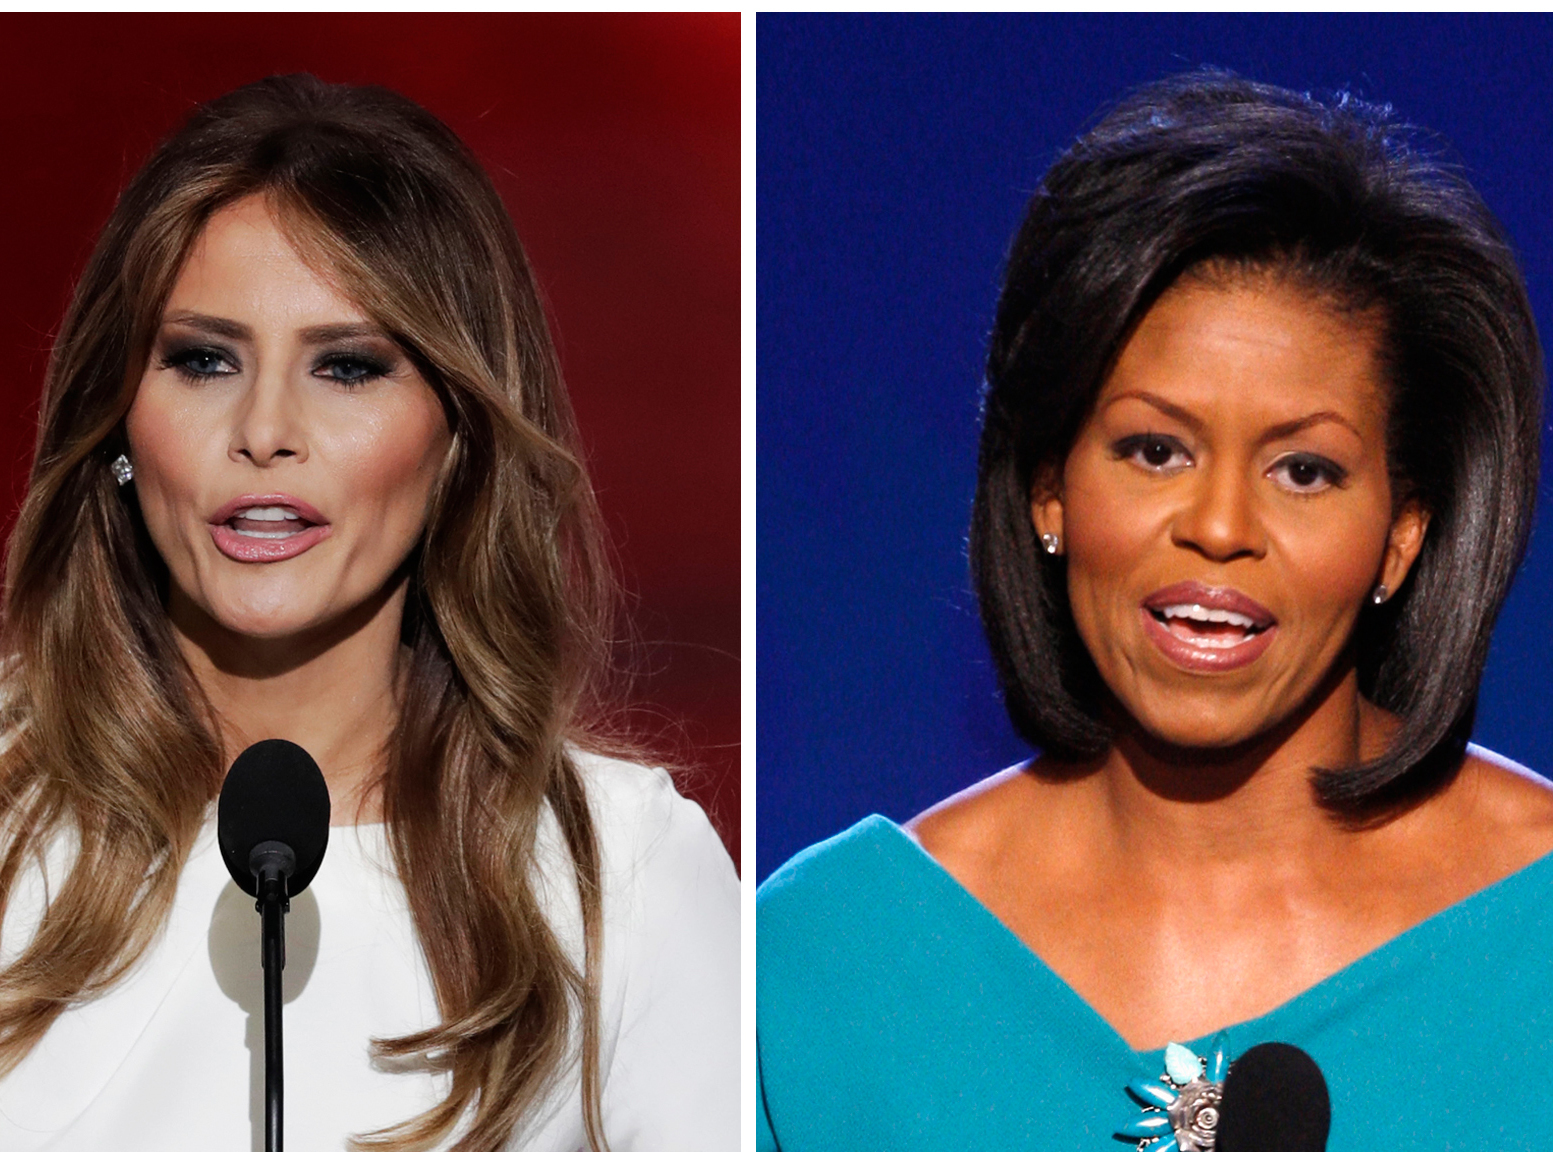 Melania Trump 'plagiarism' speech: Watch what she (and Michelle Obama) said